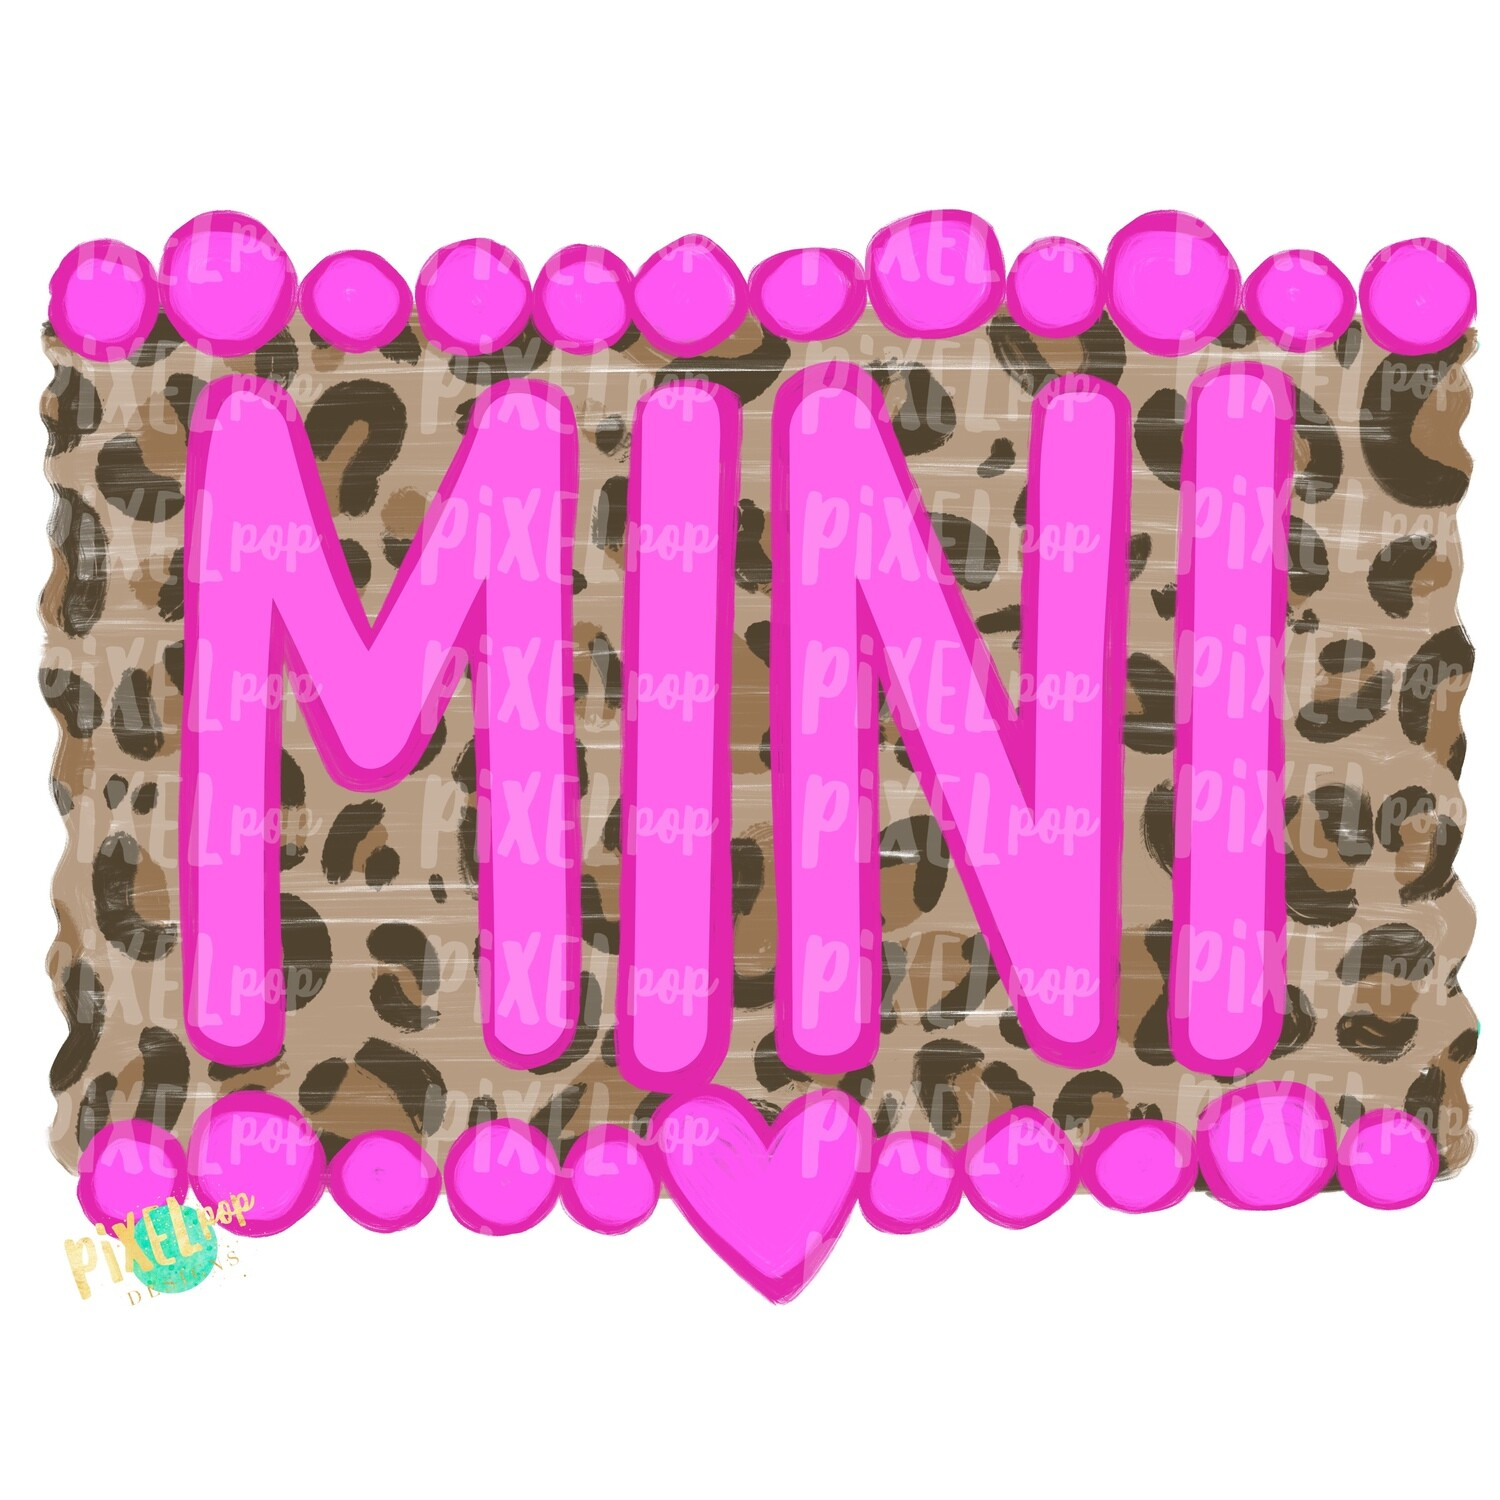 Mini Pinks and Leopard Print PNG | Sublimation Art | Daughter Design | Painted PNG | Sublimation PNG | Digital Download | Mother's Day | Art